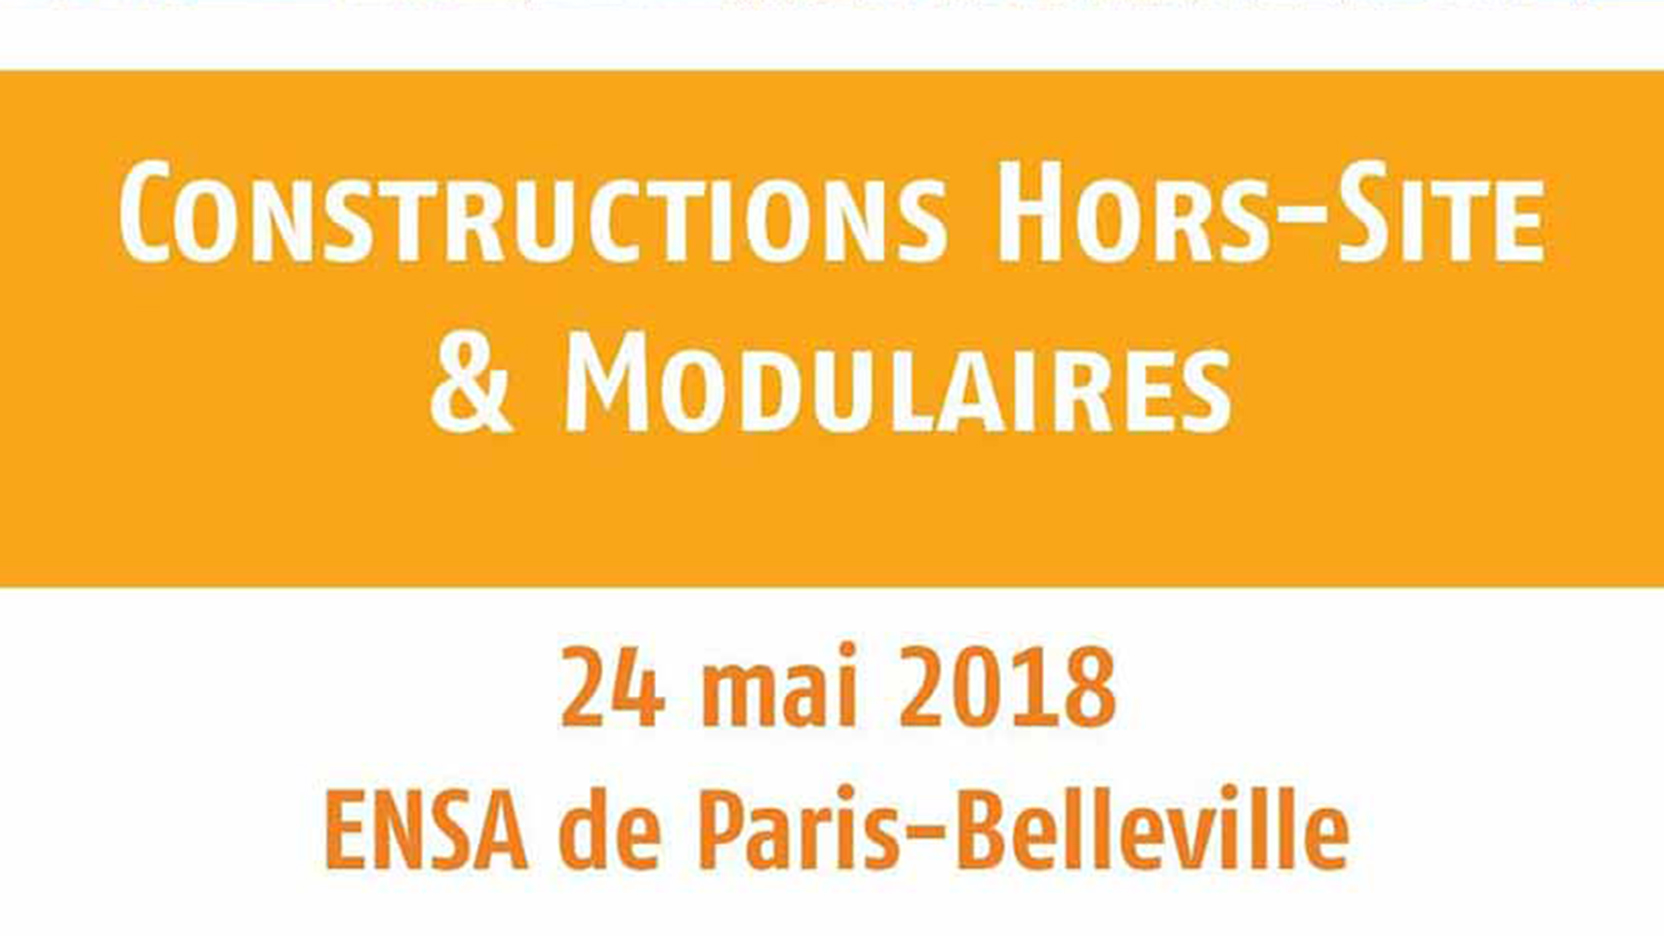 Colloque Hors-Site à l'ENSA de Paris – Belleville